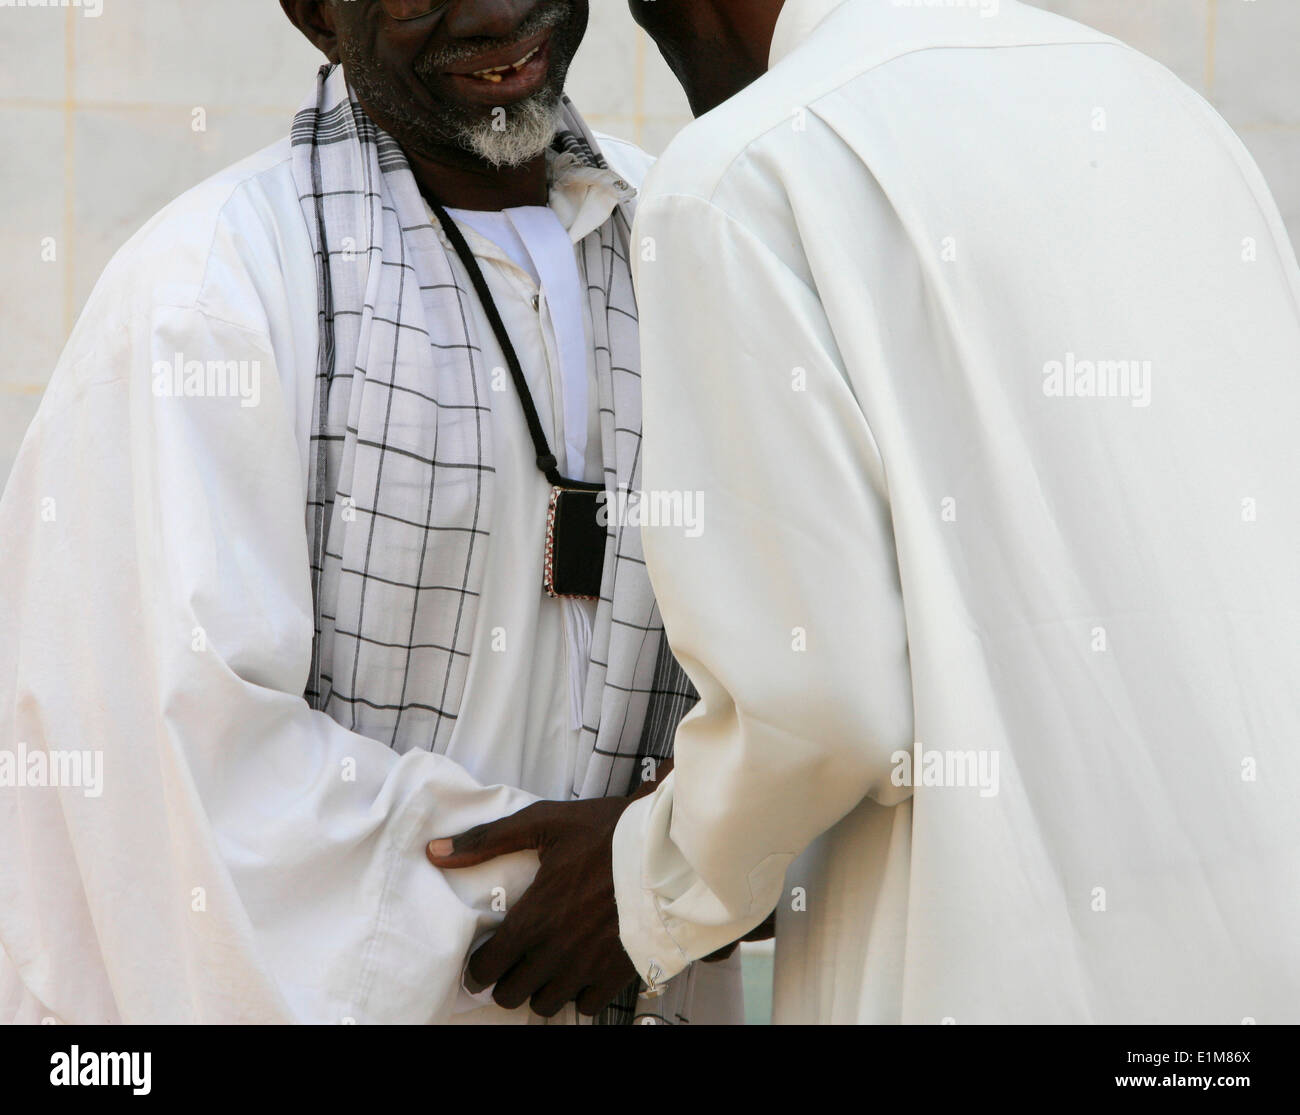 Muslims greeting each other stock photo 69901634 alamy muslims greeting each other m4hsunfo